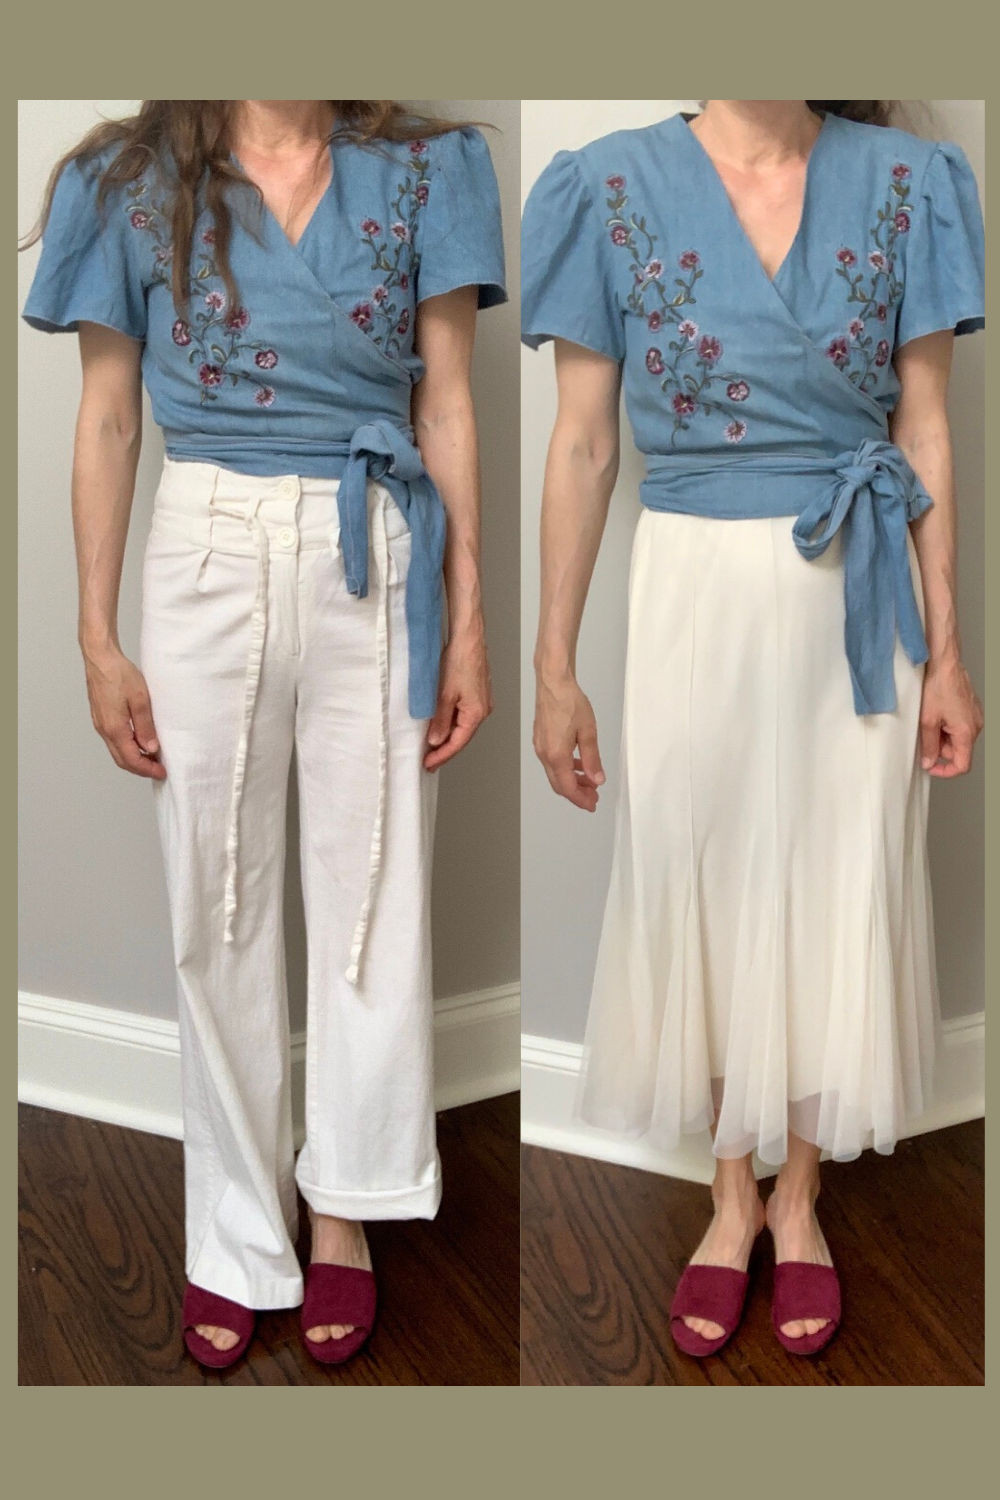 style options: white pants or white tulle skirt